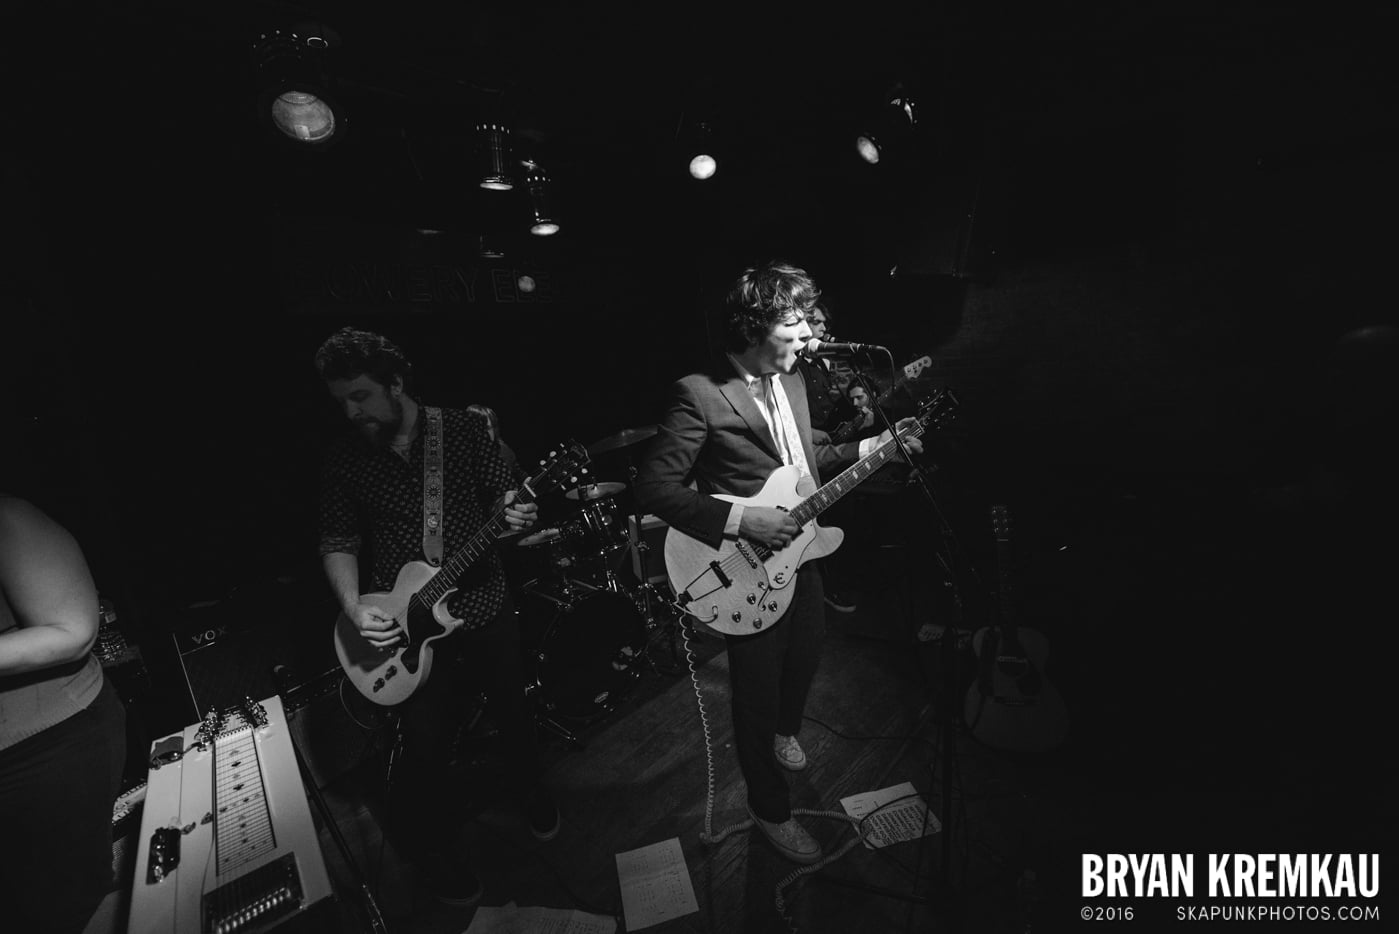 Trapper Schoepp & The Shades @ Bowery Electric, NYC - 11.20.14 (19)